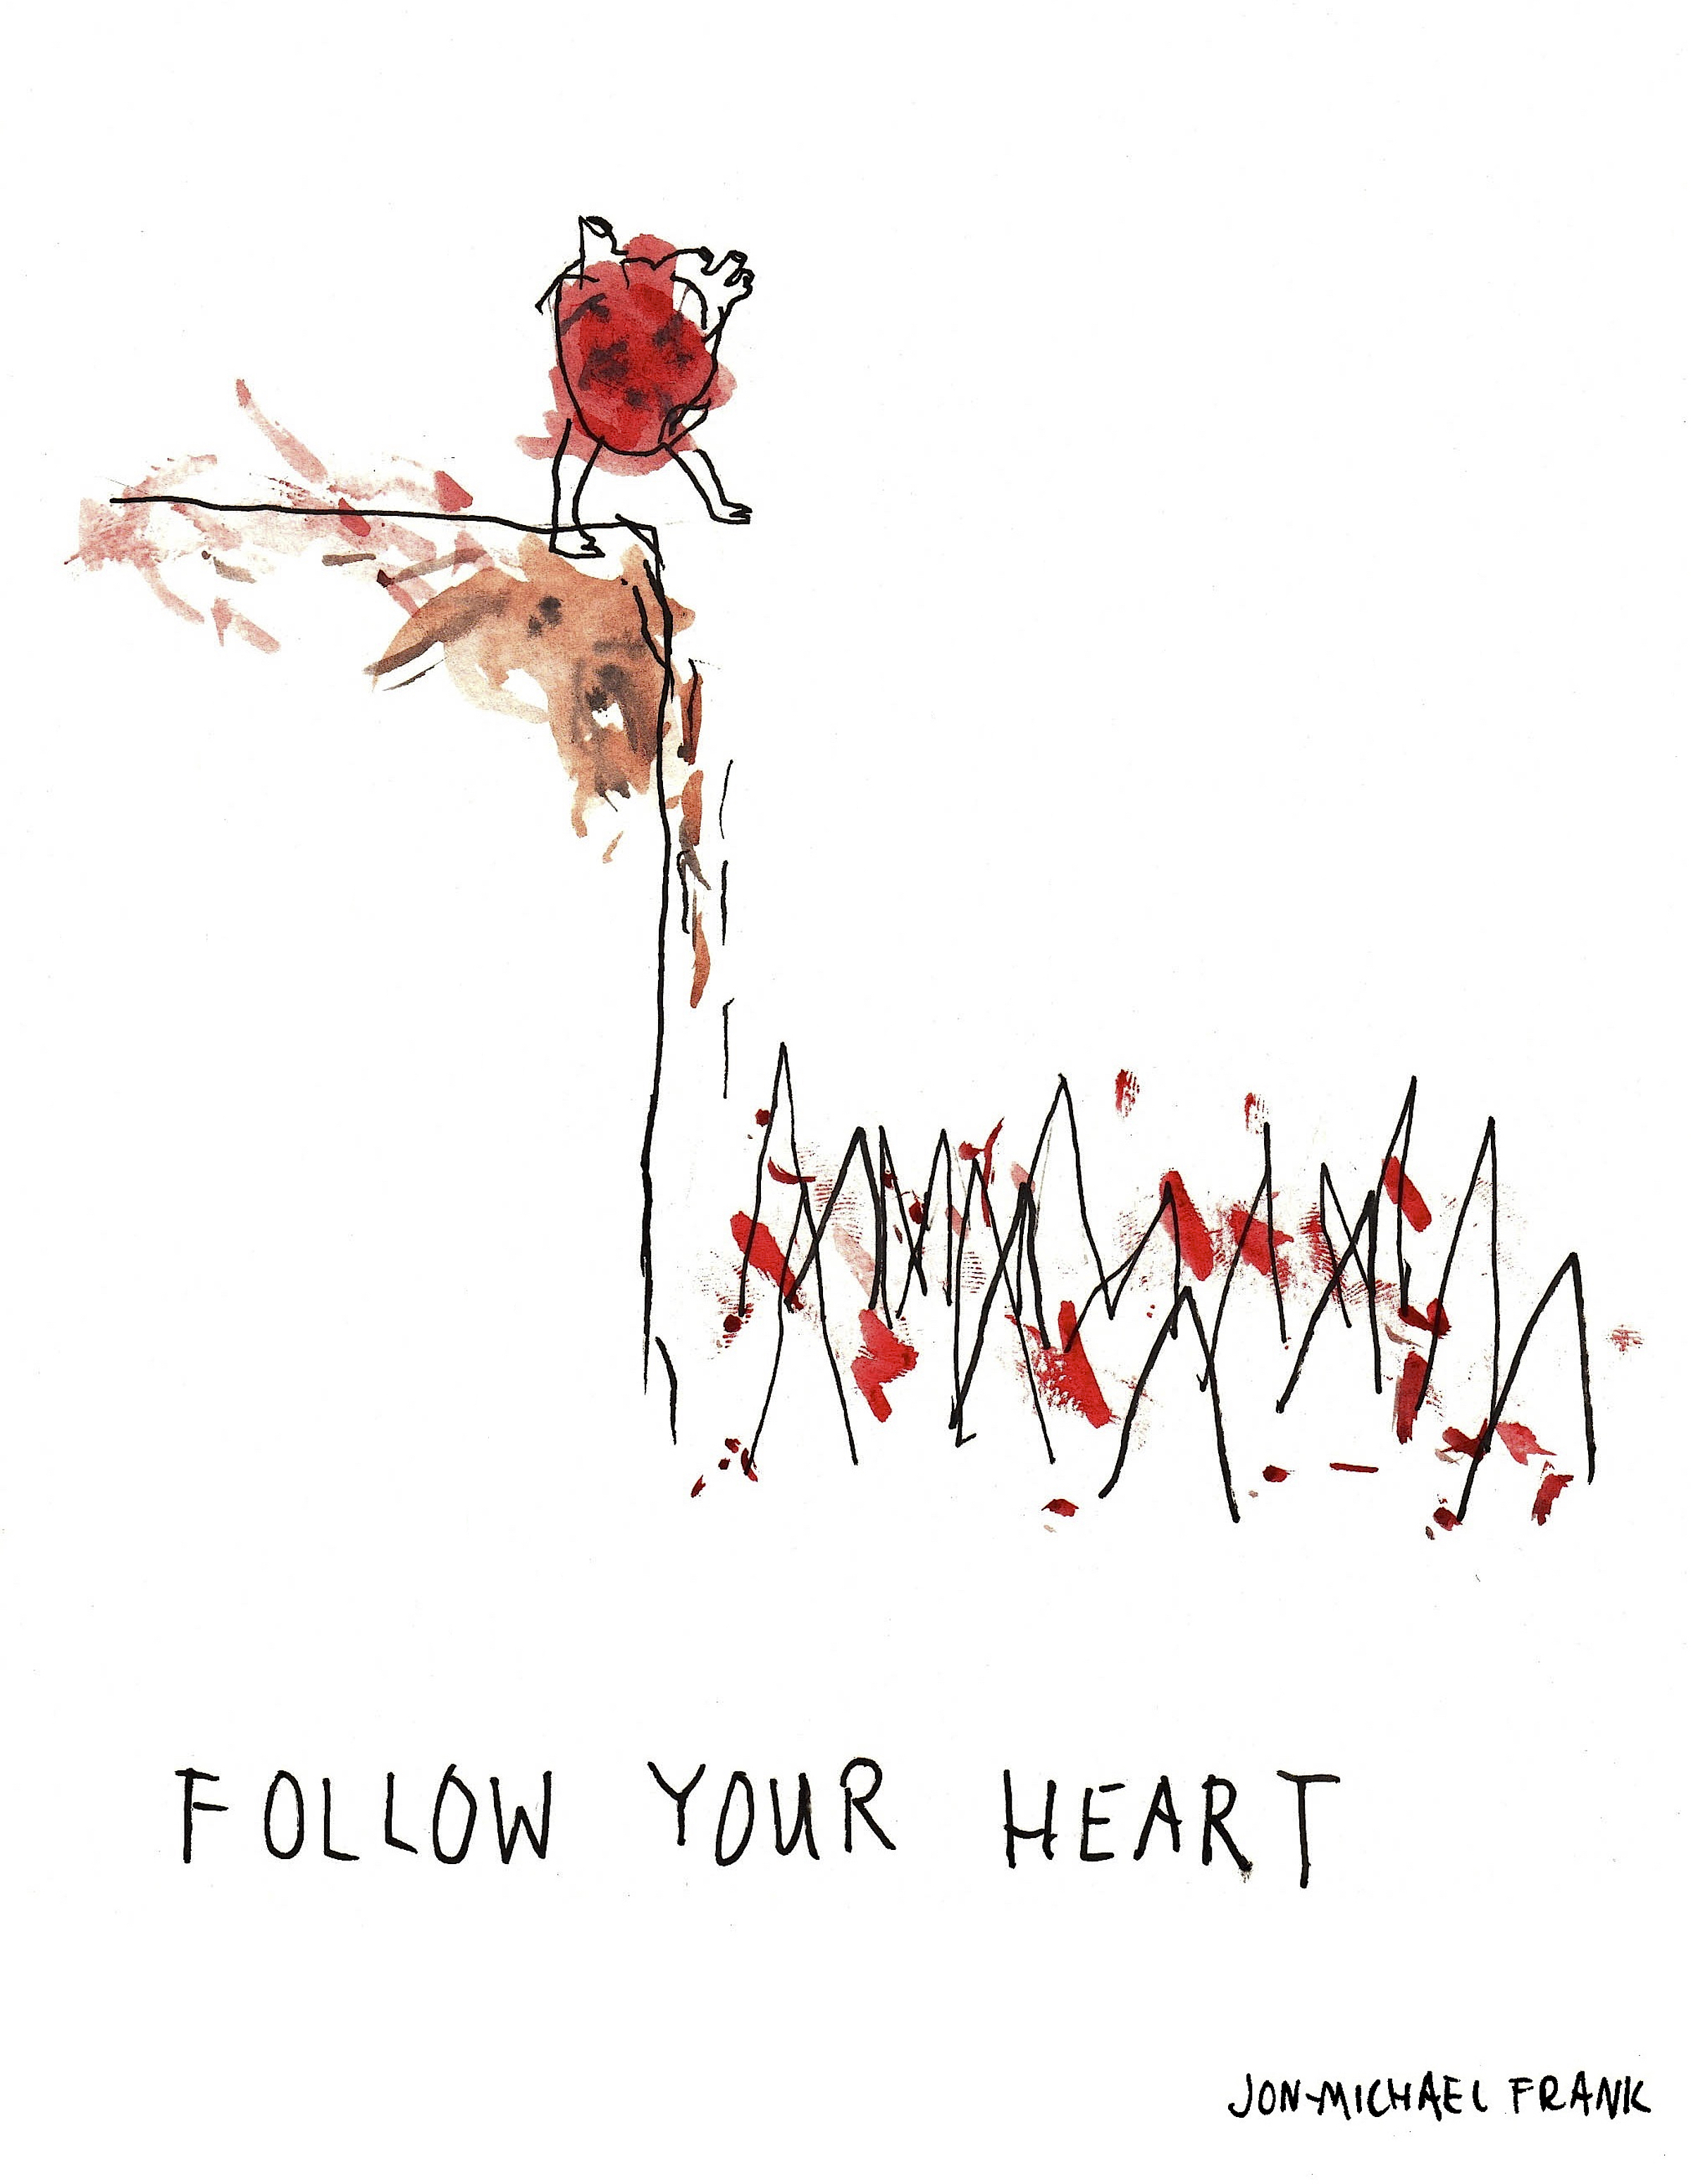 Jon-Michael Frank - Follow Your Heart